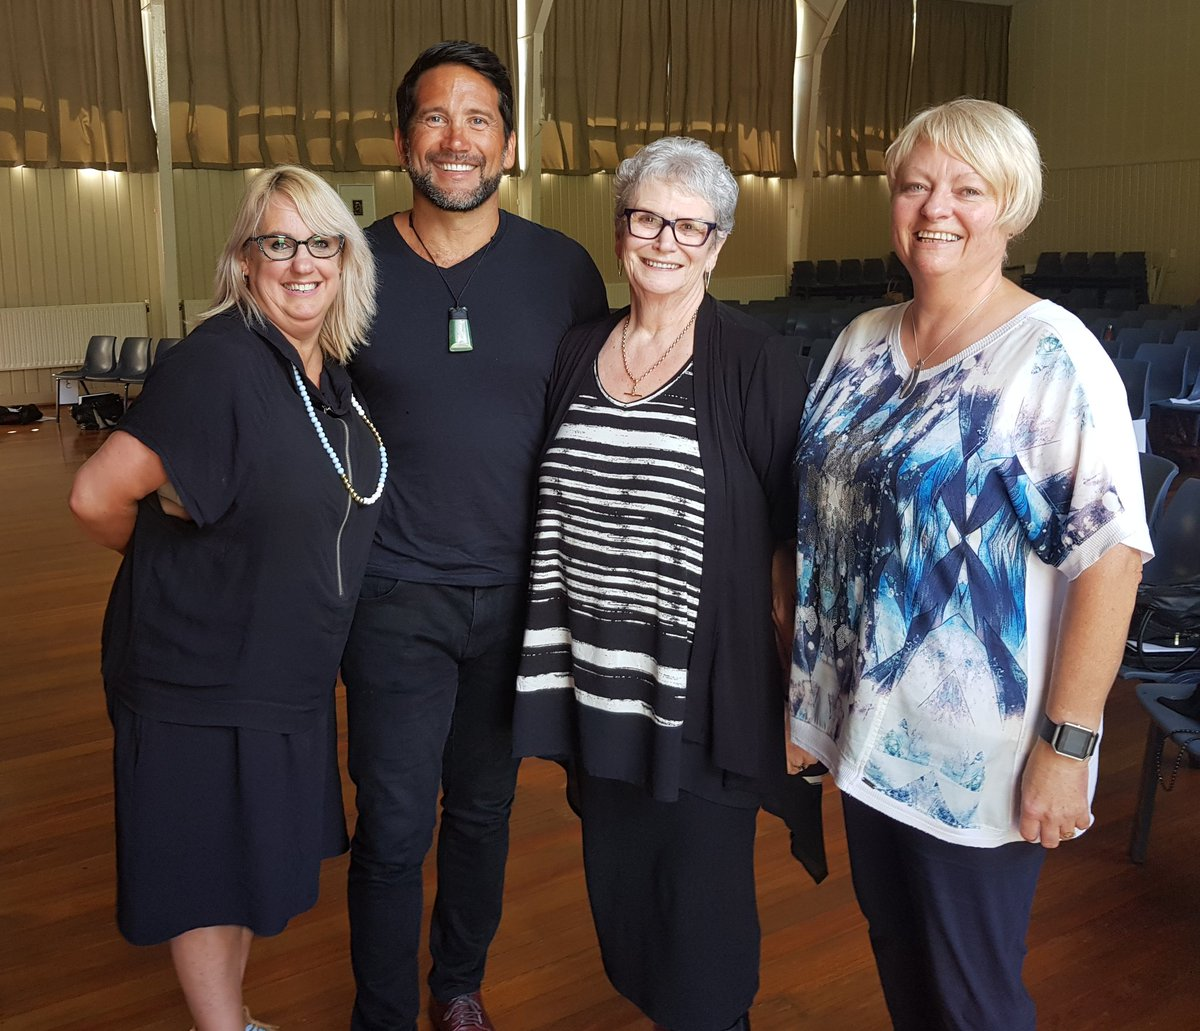 Helen Taylor-Young, Principal of  Victory Primary School  and Lead Principal of the Nelson City Community of Learning,  Dr Lance O'Sullivan  and  Dr Cheryl Doig .